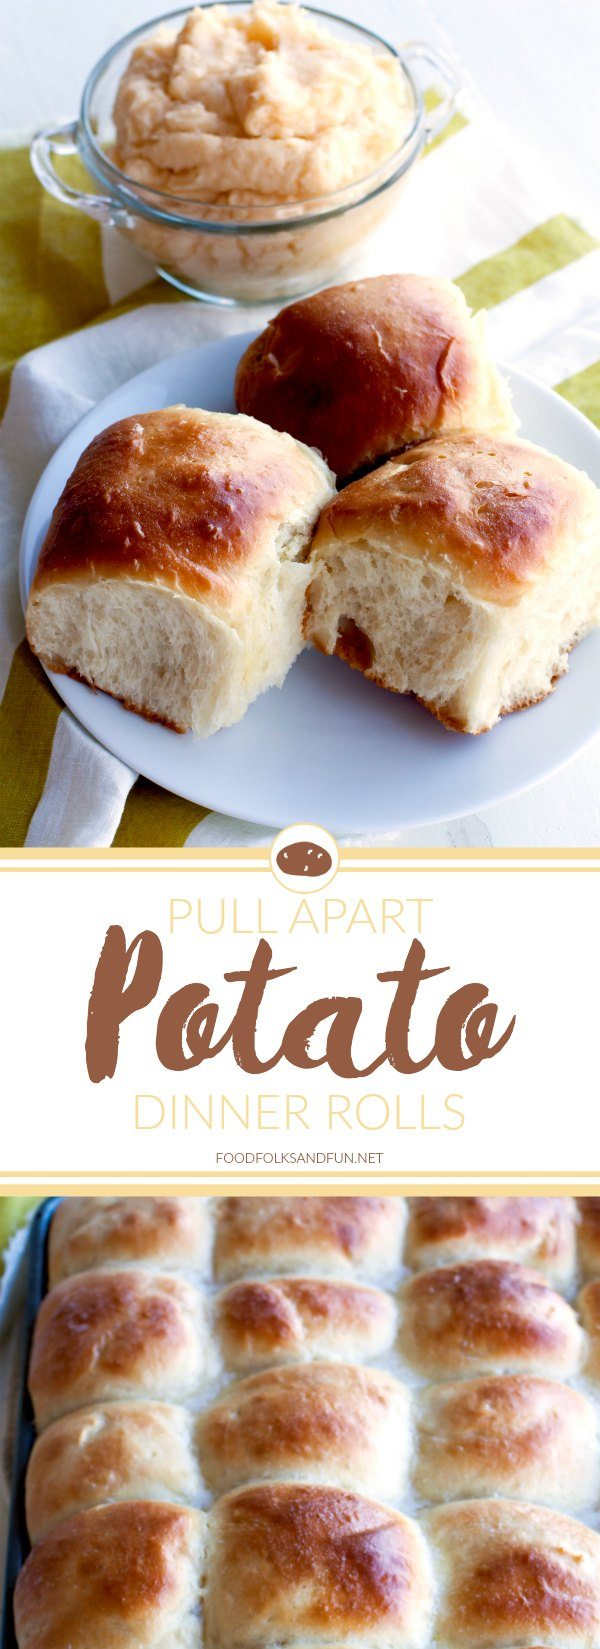 These soft and tender Pull Apart Potato Rolls are my all-time favorite rolls recipe for serving during fall dinners and holidays. via @foodfolksandfun